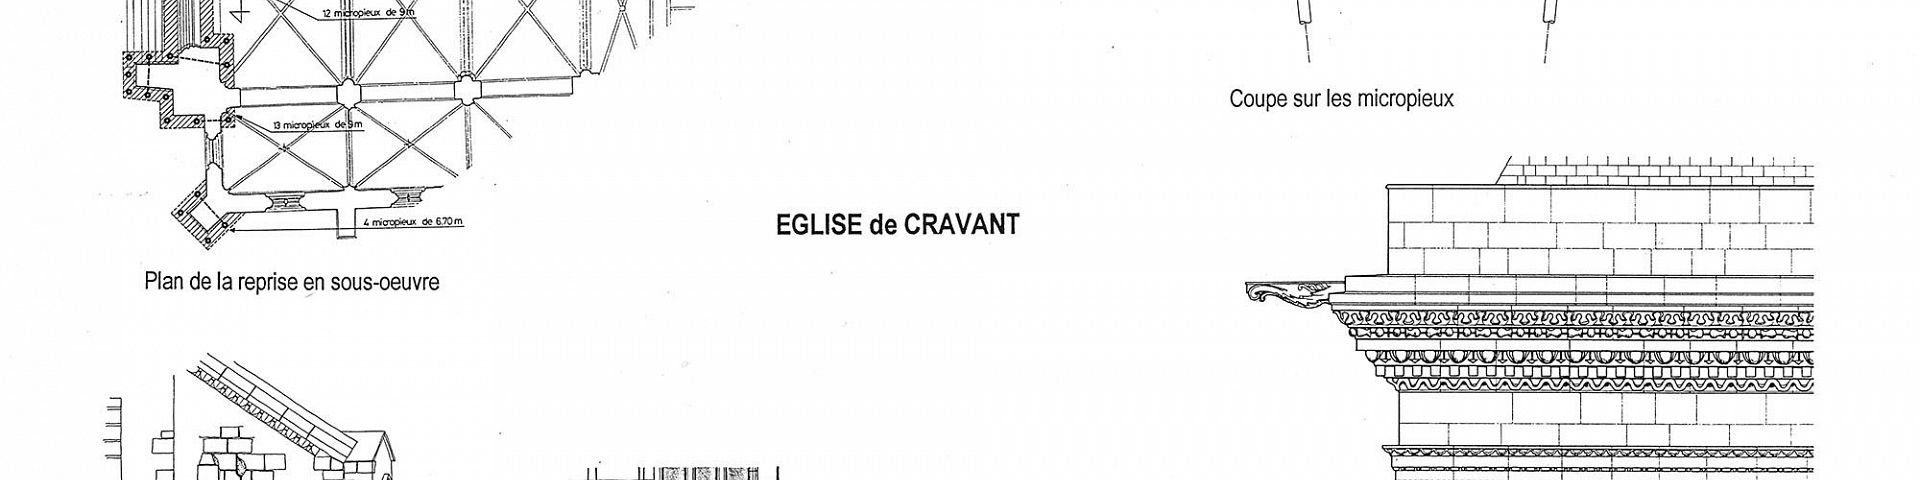 Cravant - Eglise (89)